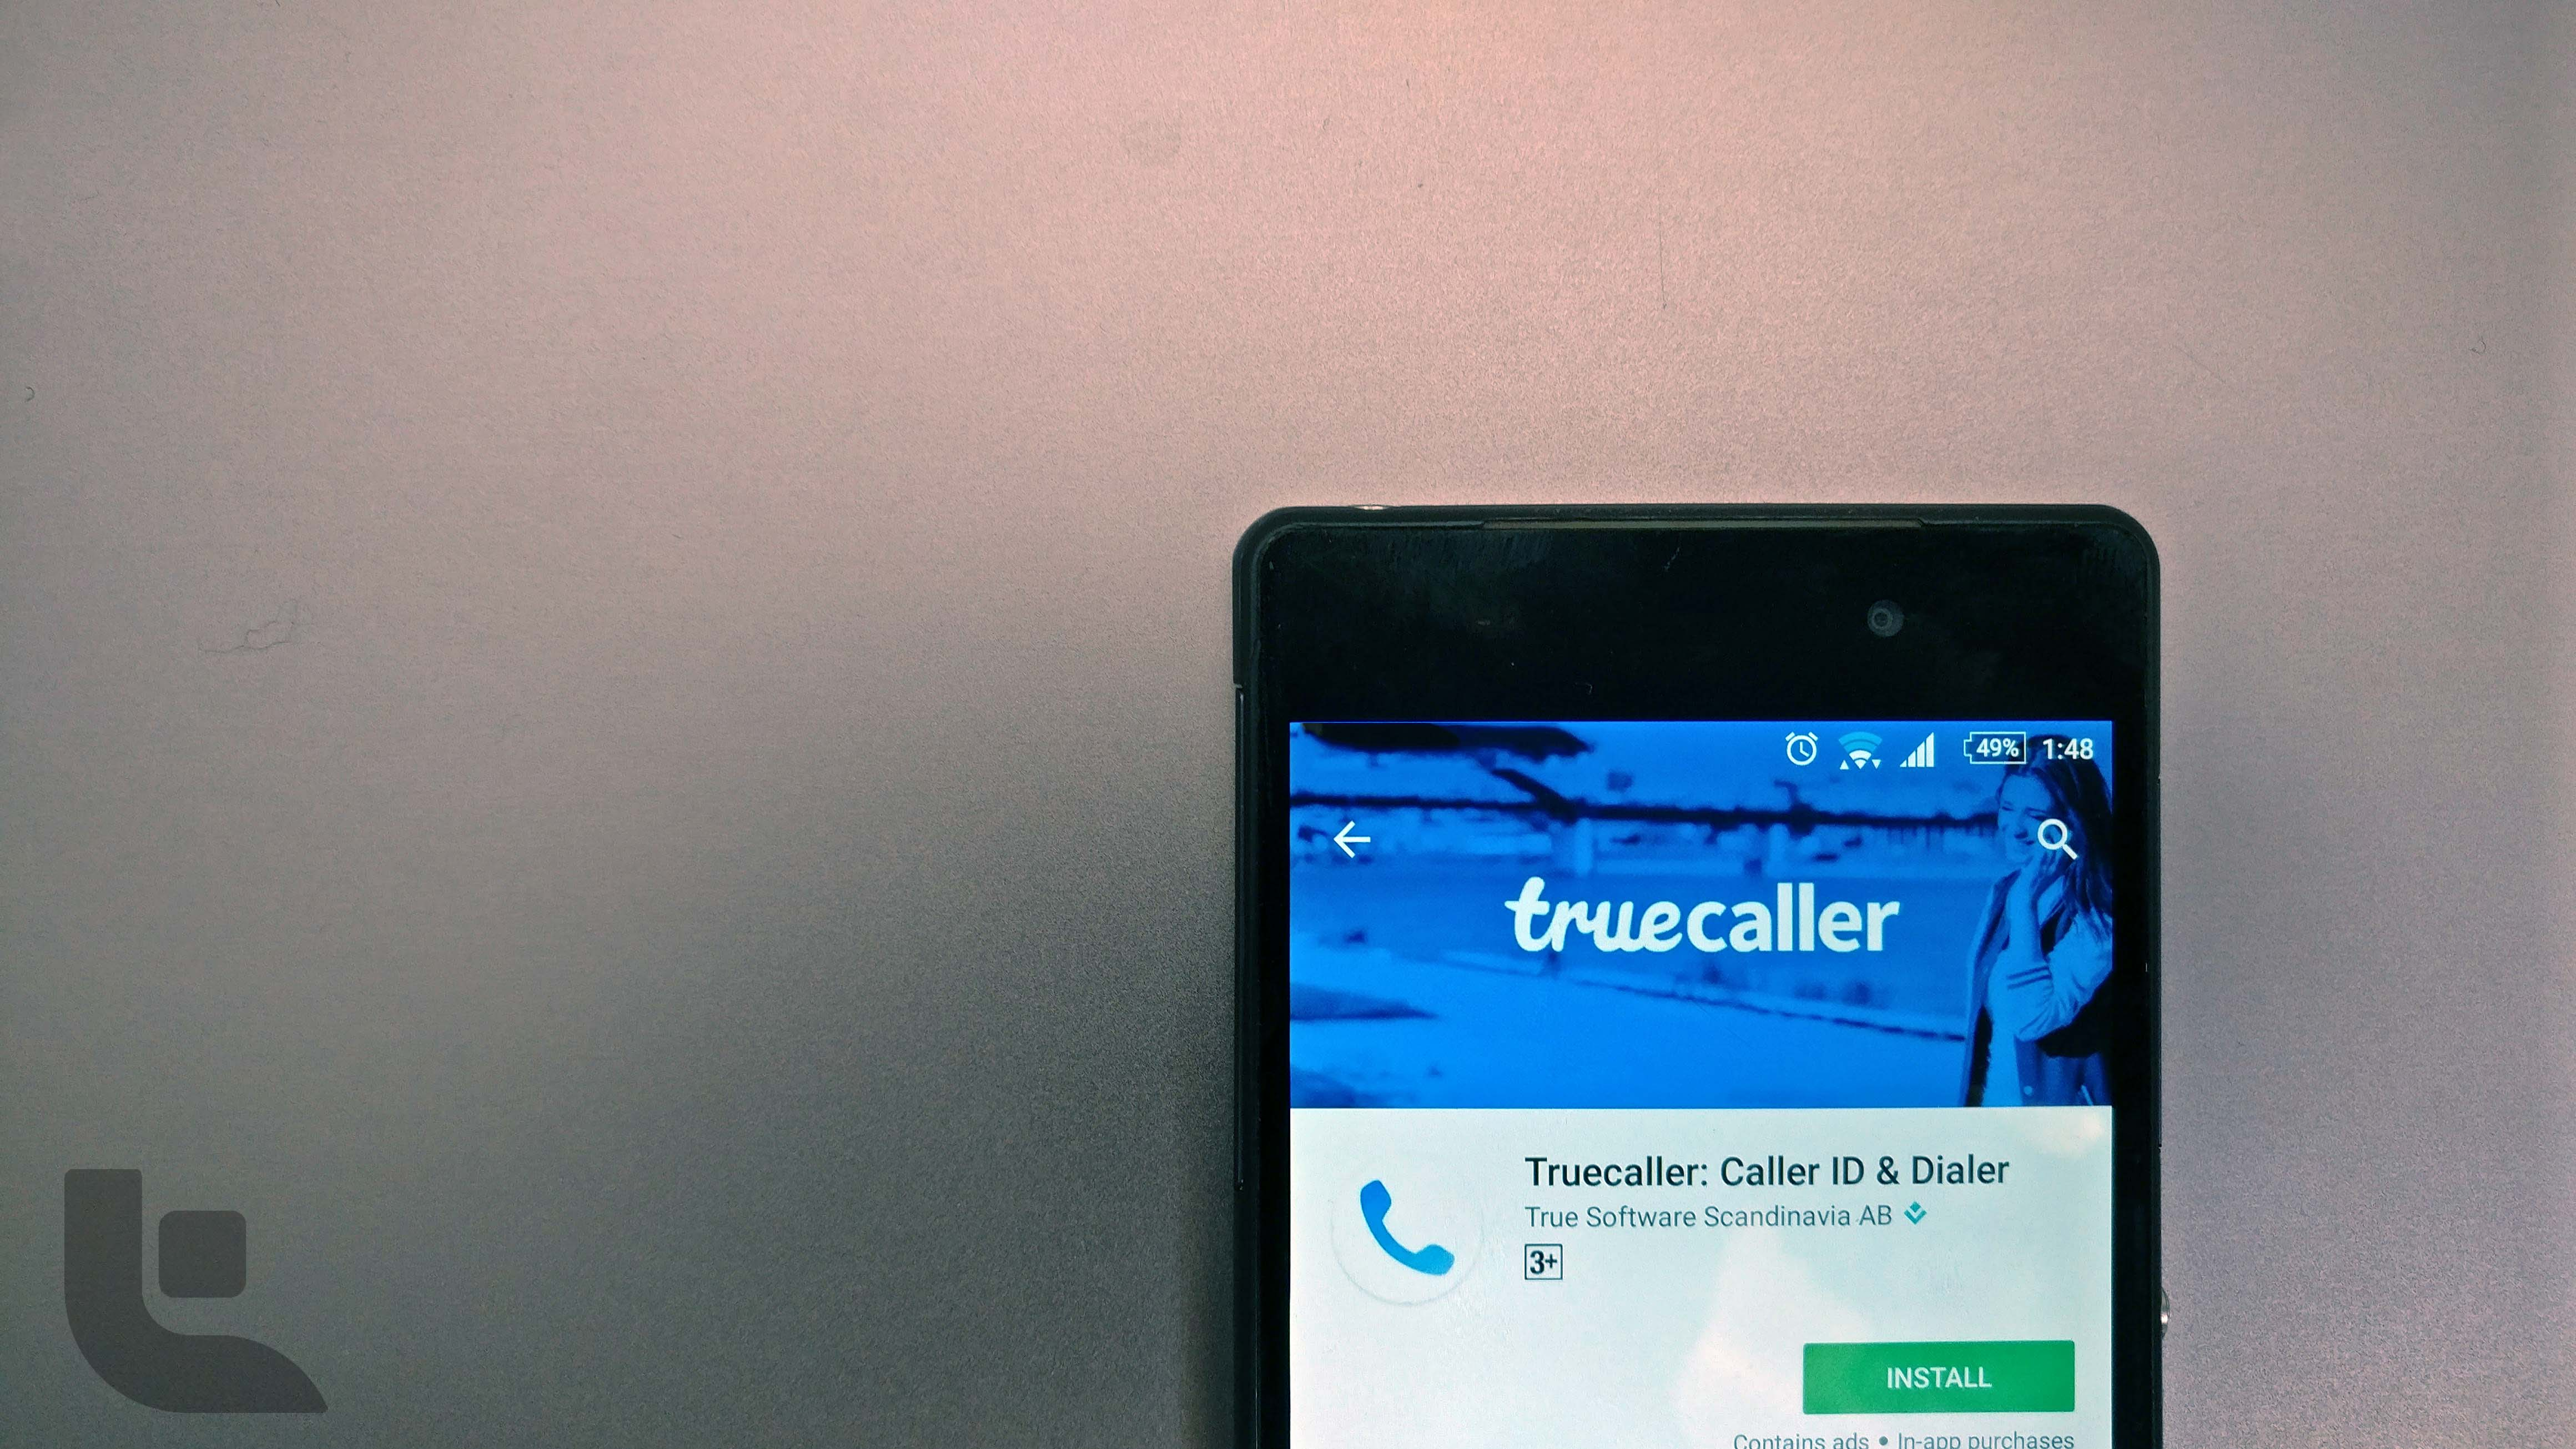 It's Time to Uninstall Truecaller as the Company Introduces